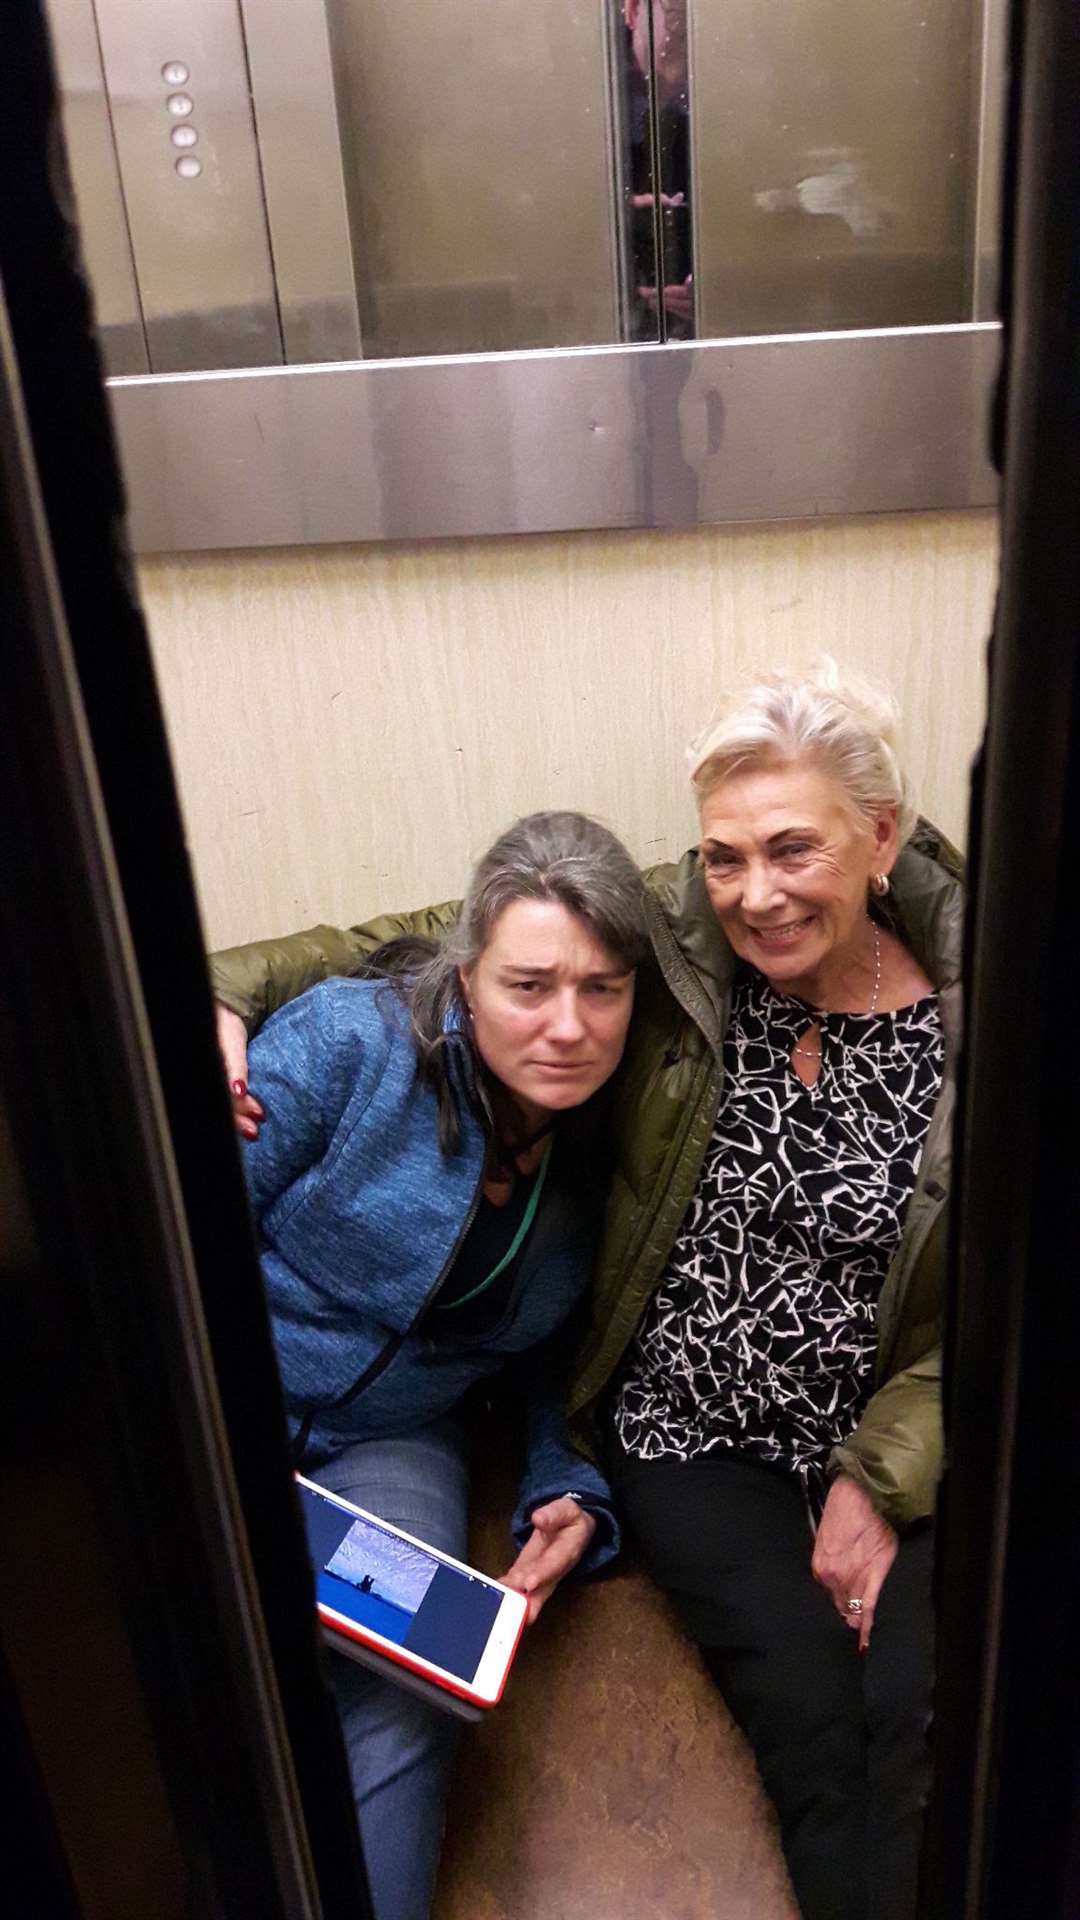 Cllrs Monique Bonney, left, and June Garrad had to be rescued by firemen after becoming trapped in a lift at Swale House after a full council meeting